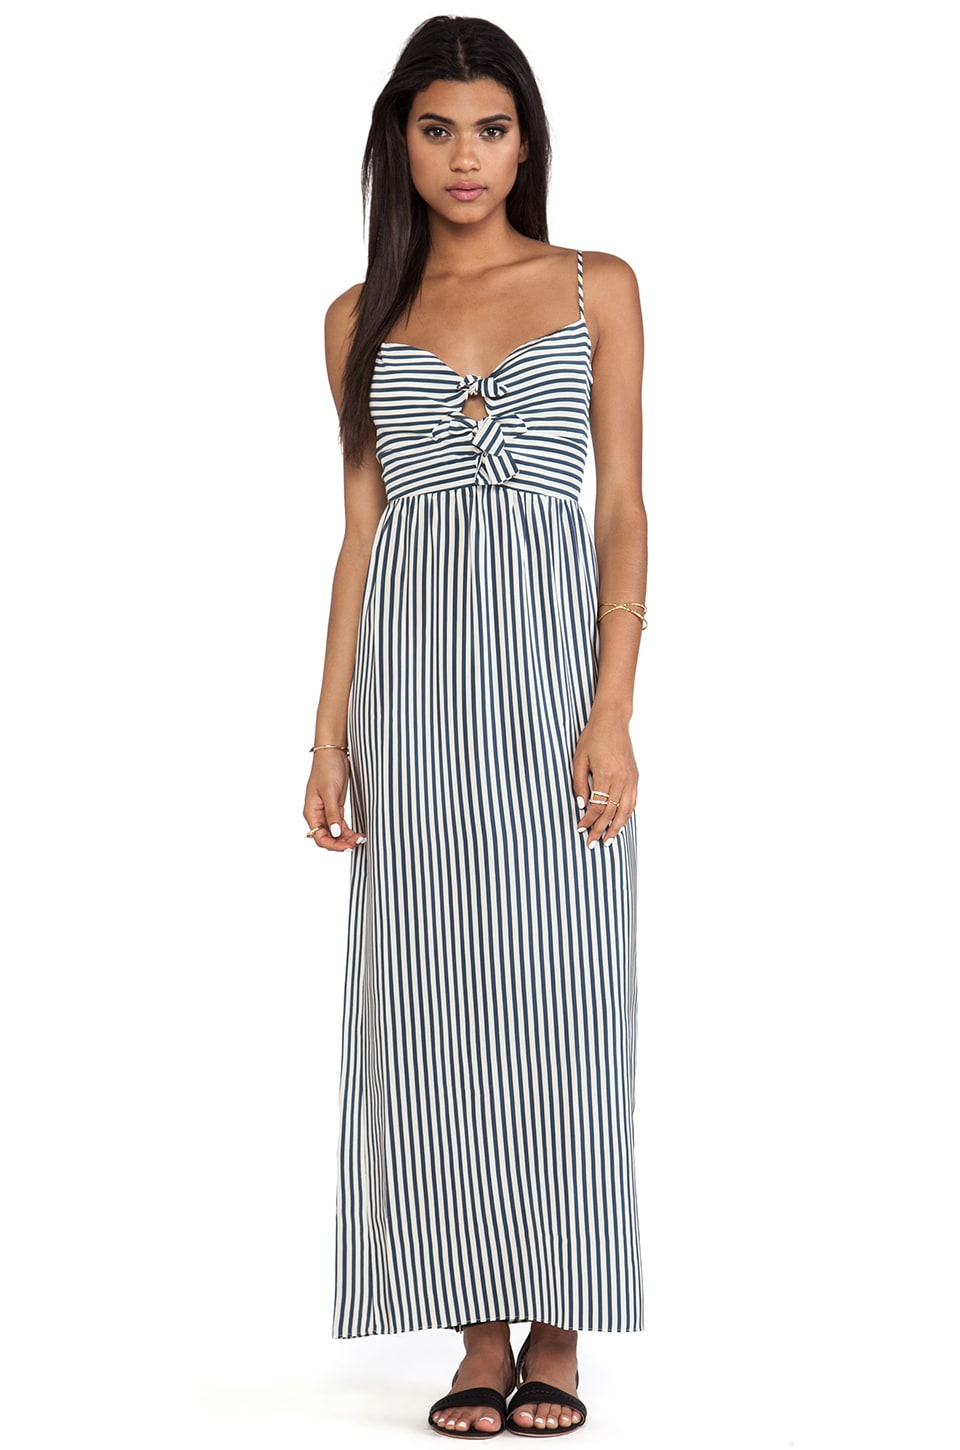 Paper Crown by Lauren Conrad Savannah Striped Dress in Navy/Cream